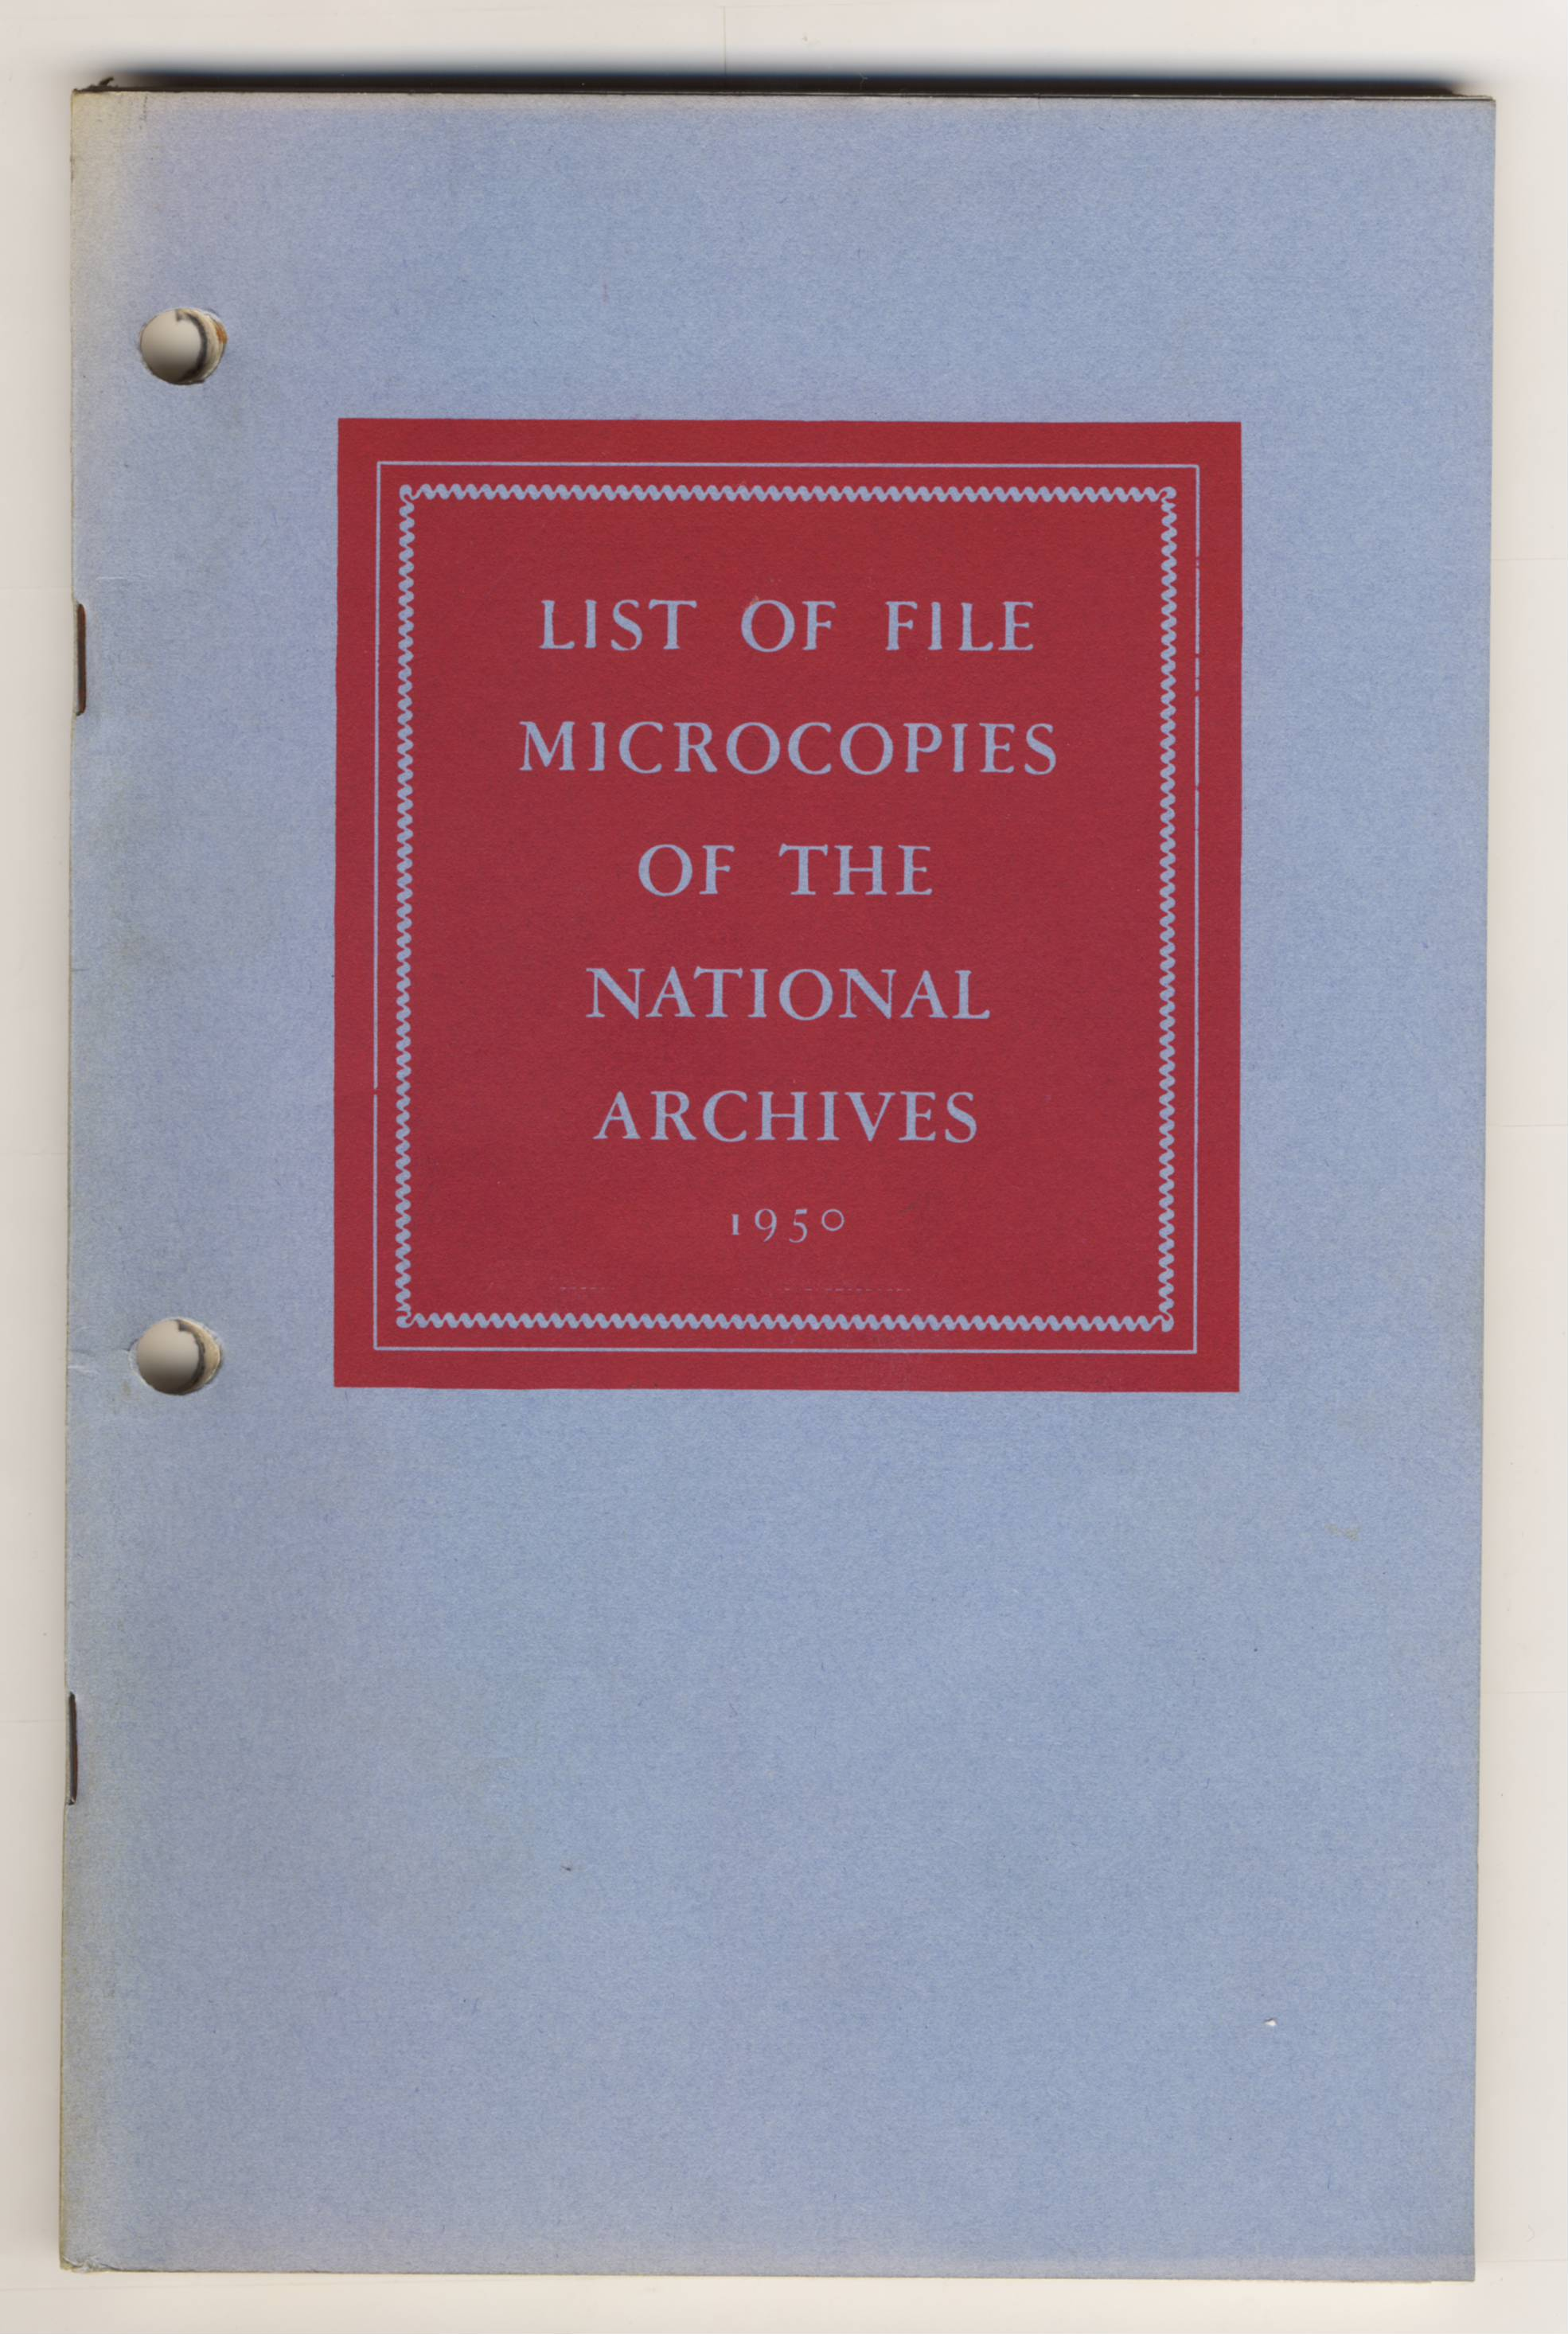 RG 64, P 74 - List of File Microcopies, 1950 - Cover.jpg